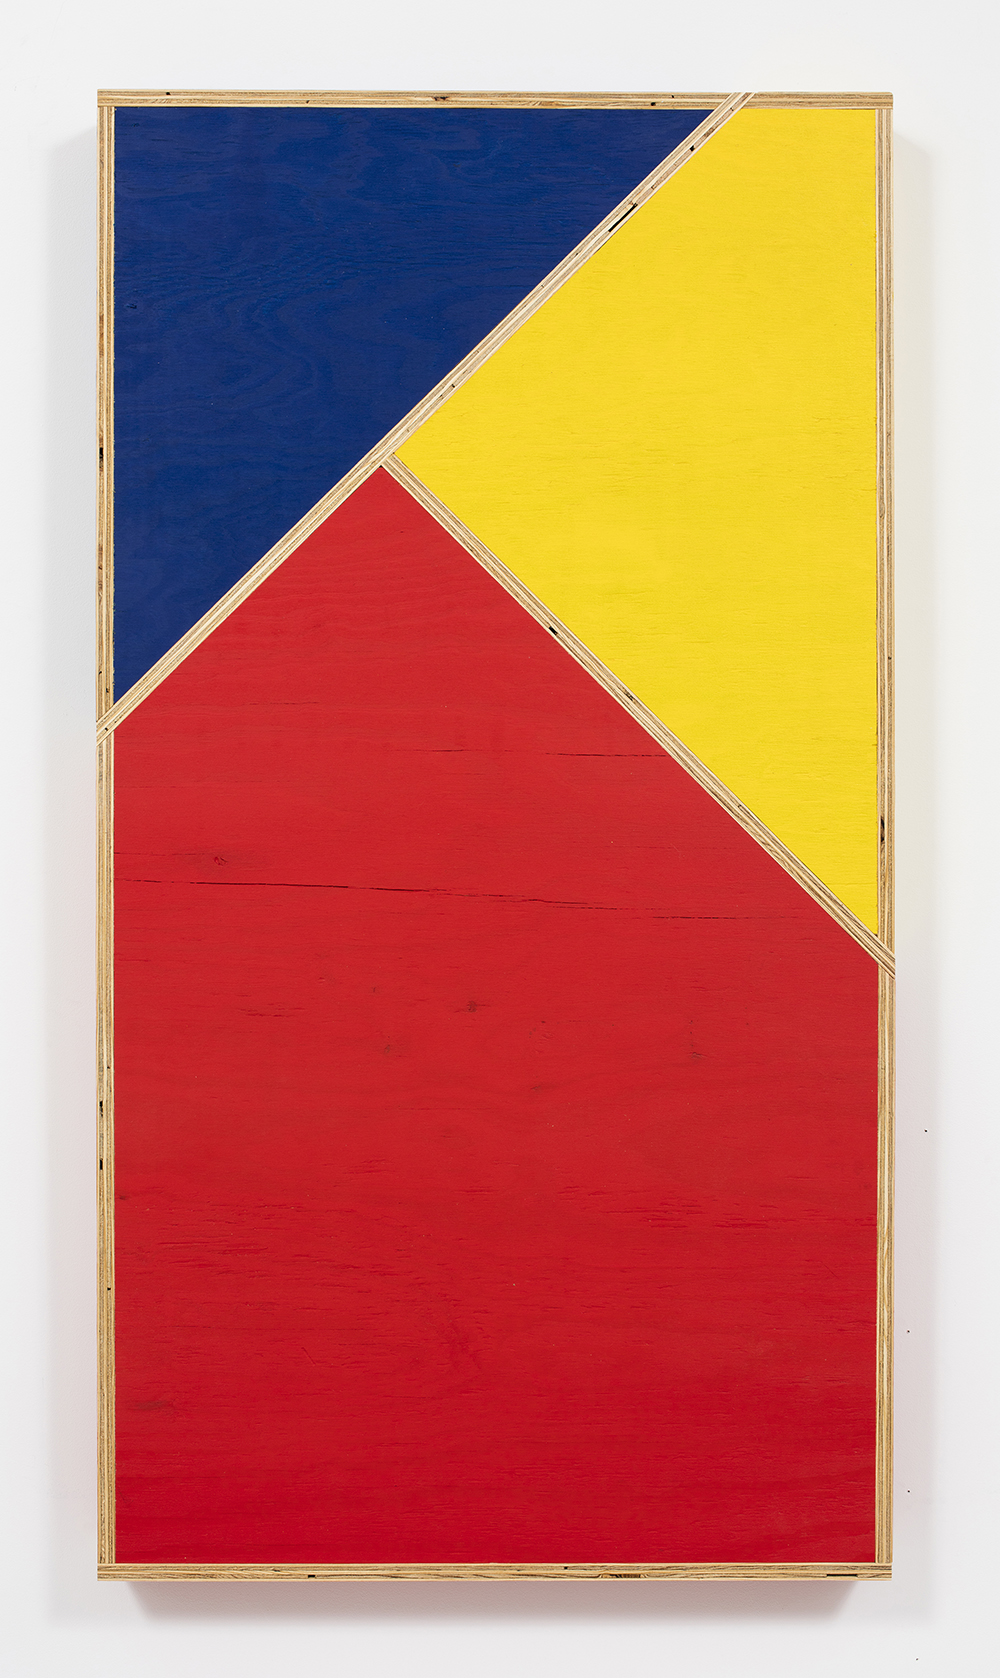 G.T. Pellizzi. <em>Transitional Geometry in Red, Yellow and Blue (Figure 34)</em>, 2016. Eggshell acrylic on plywood, 60 x 32 inches